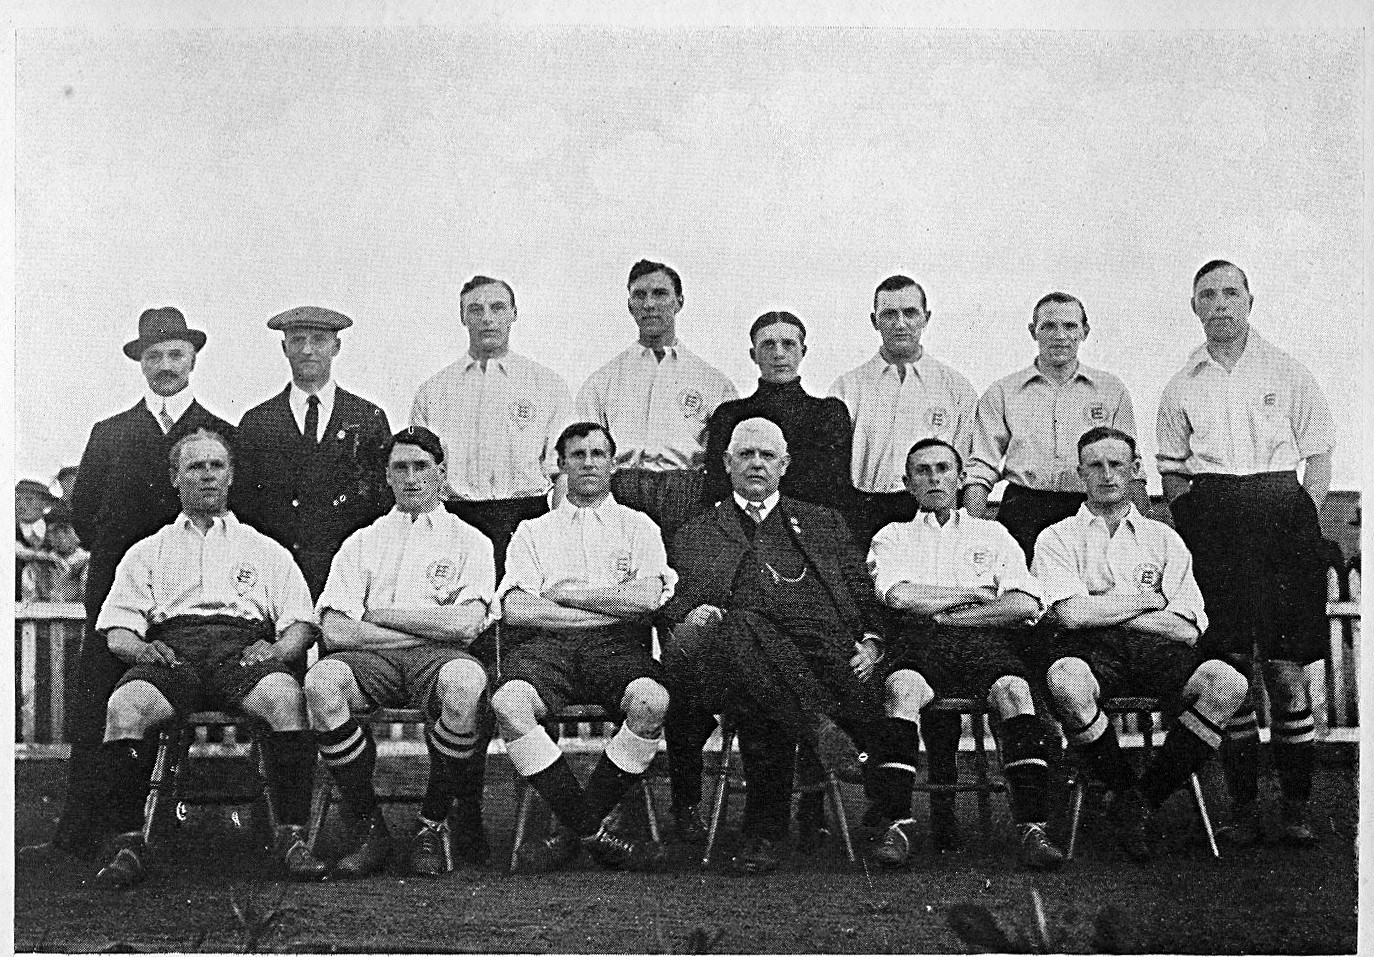 England v Sweden 12th June 1914